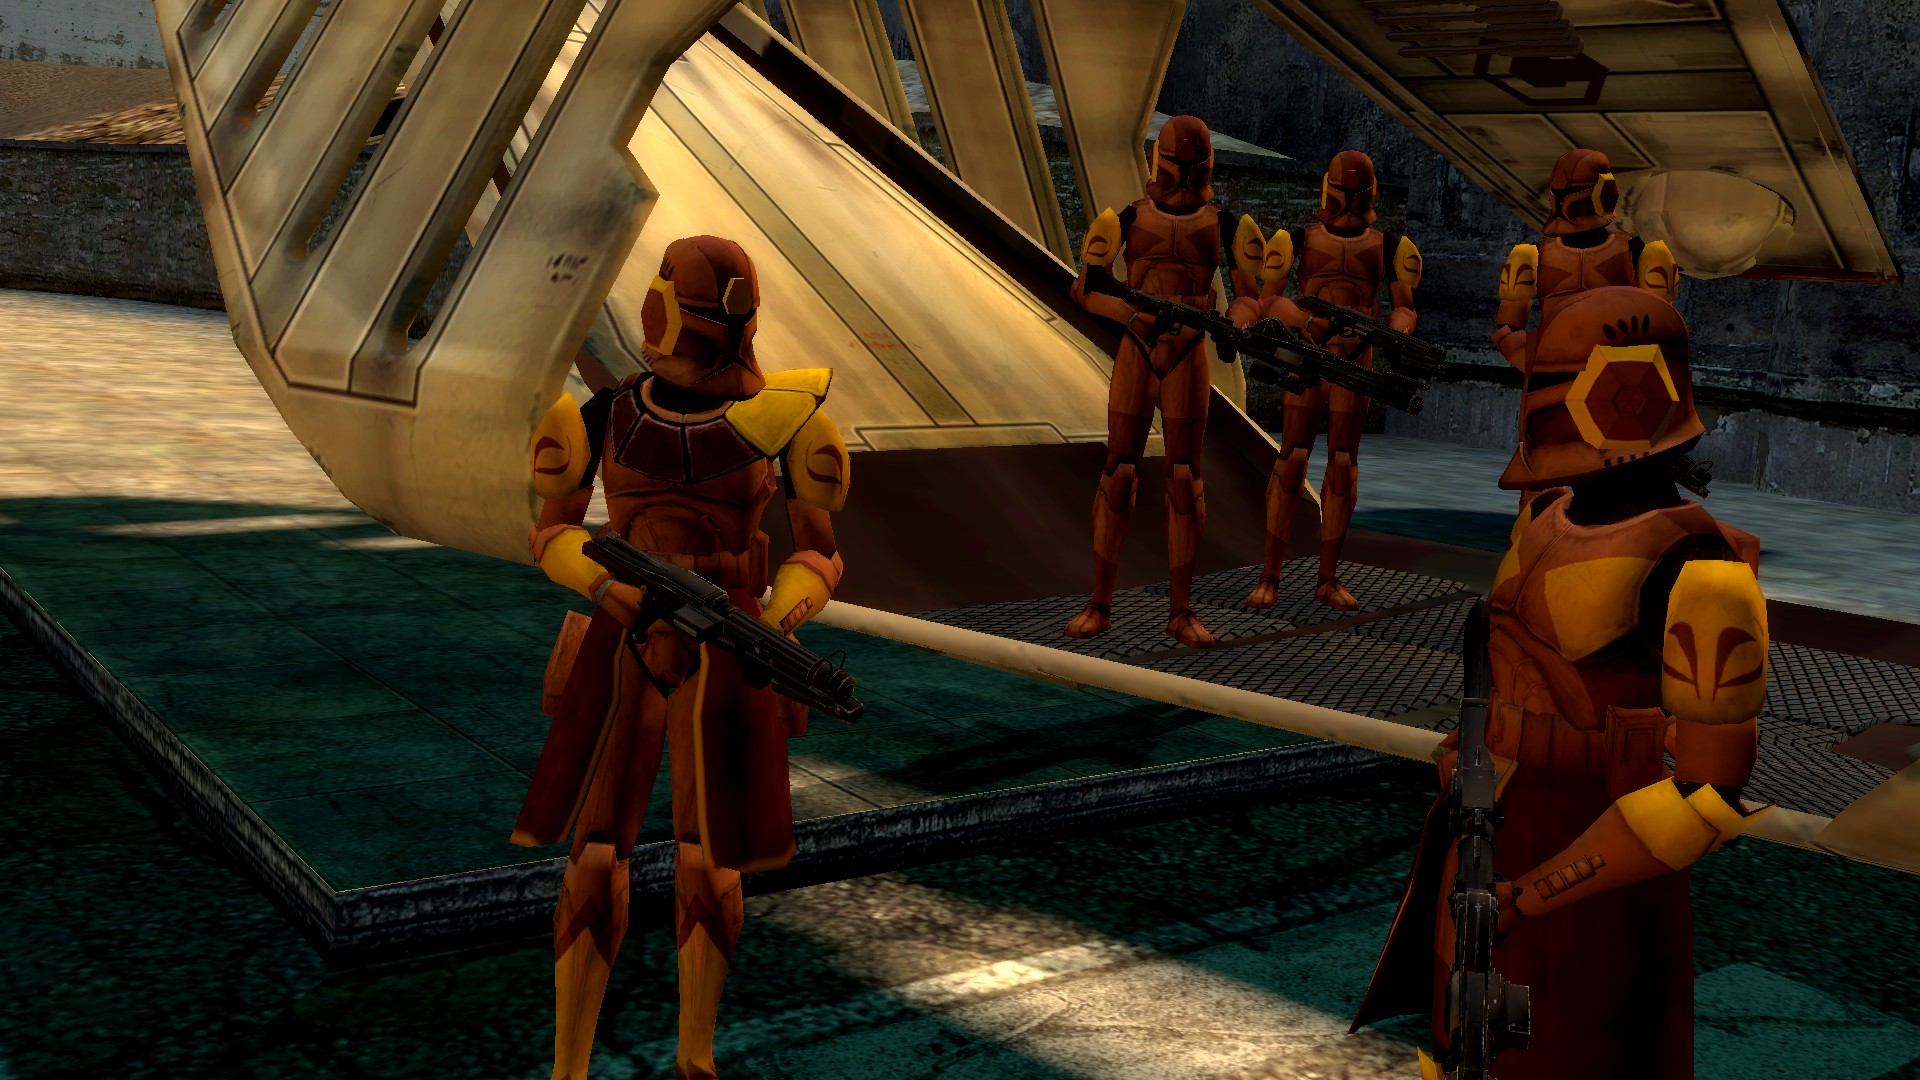 Steam Workshop Star Wars The Clone Wars Npcs 21st Nova Corps 220th Special Forces And Special Operations